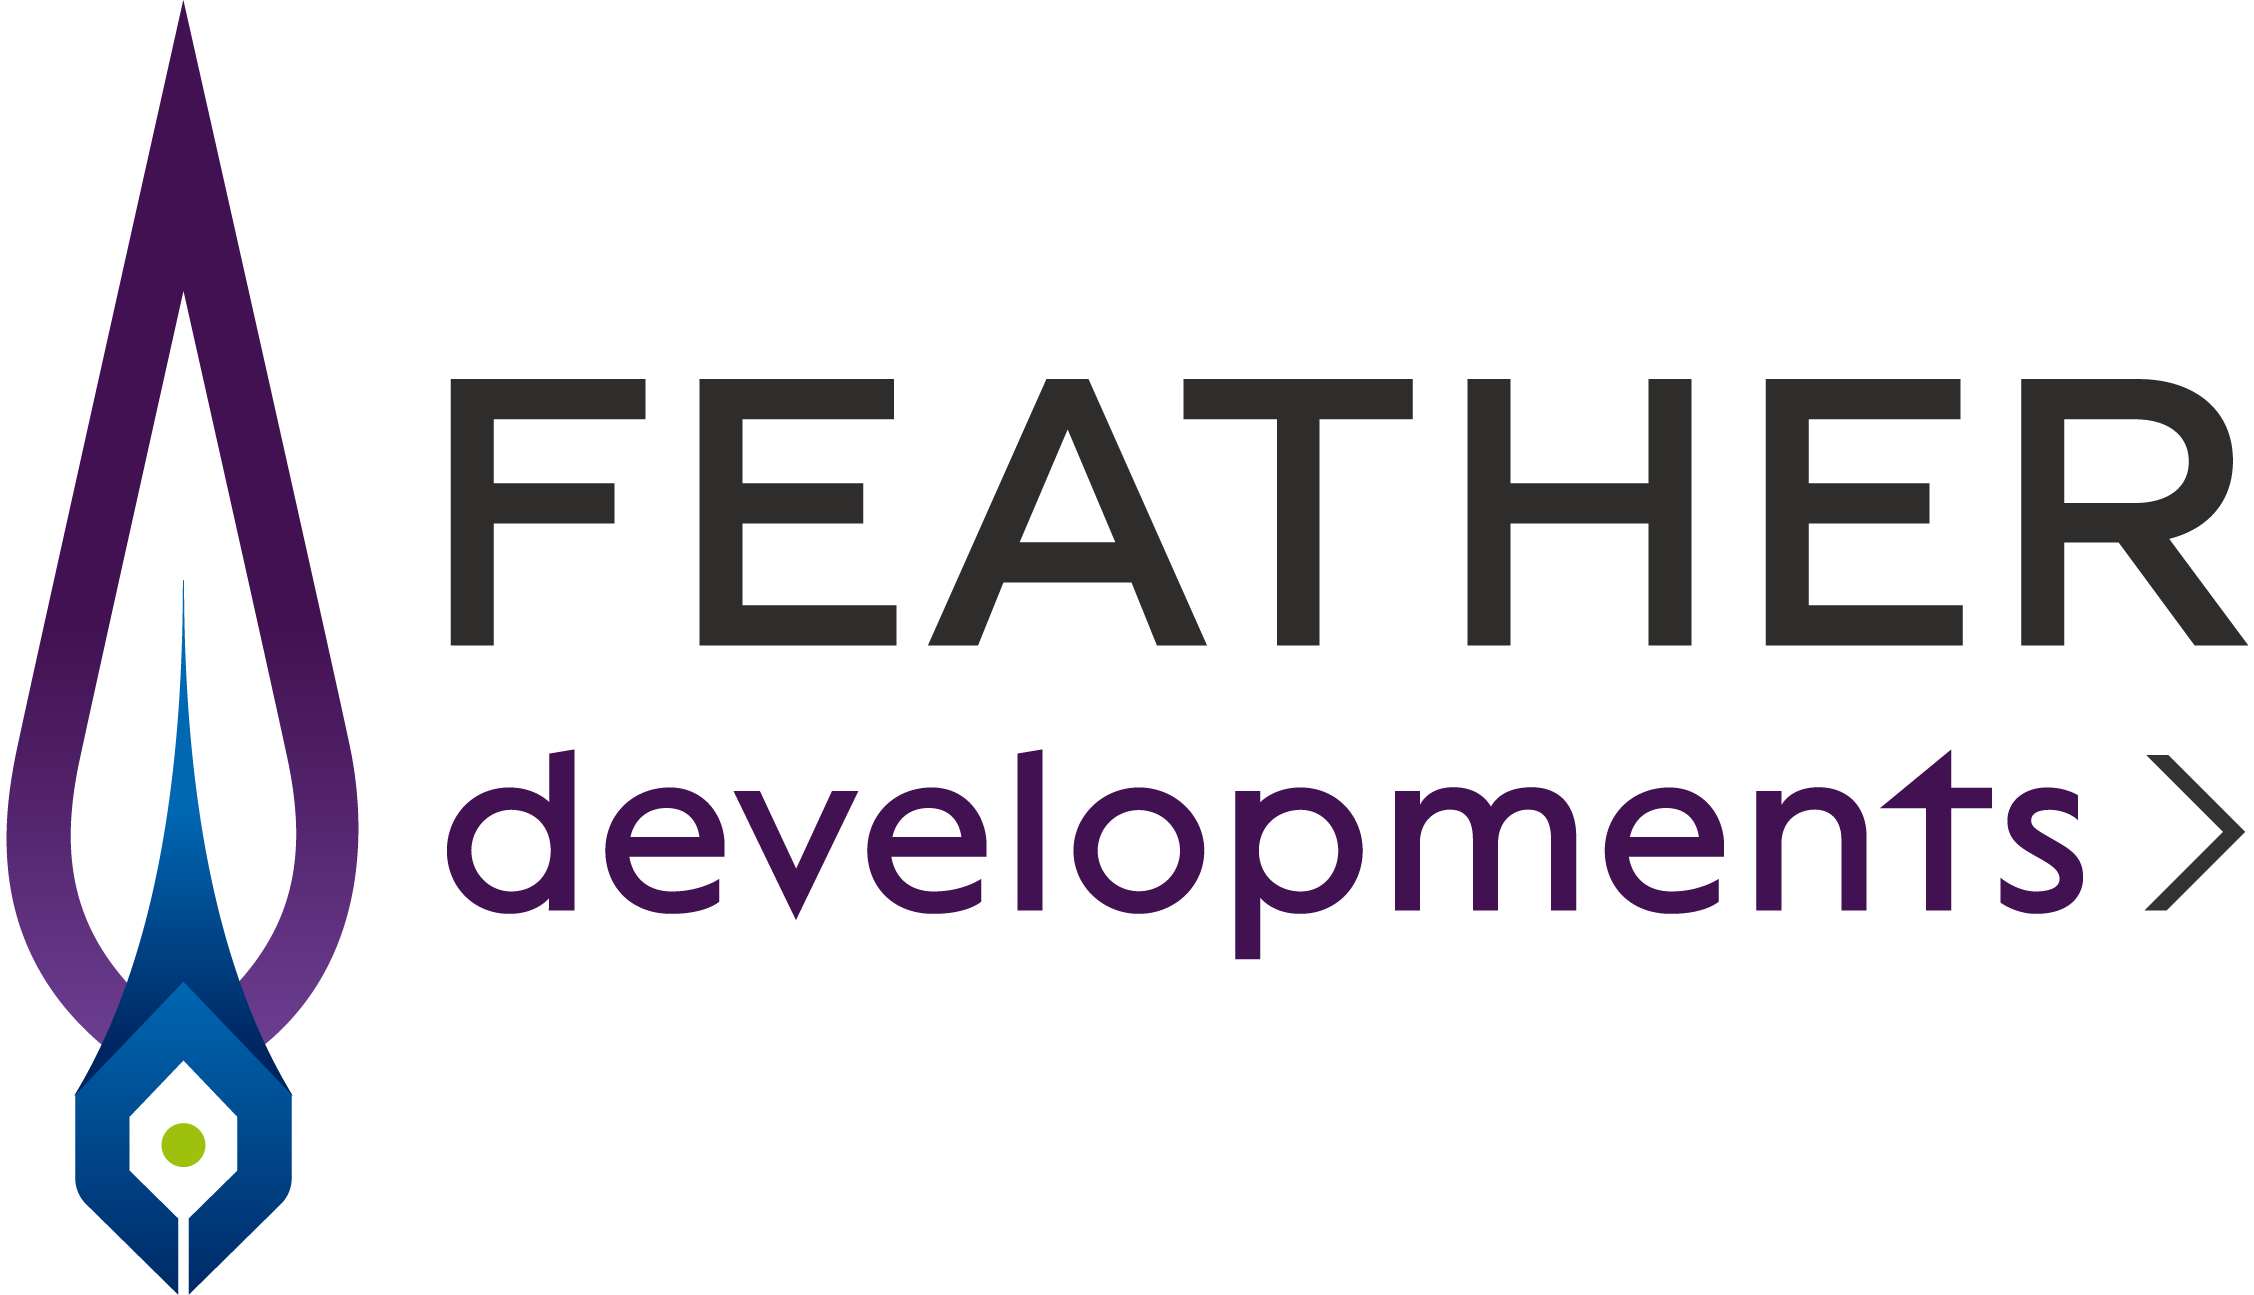 Feather Development